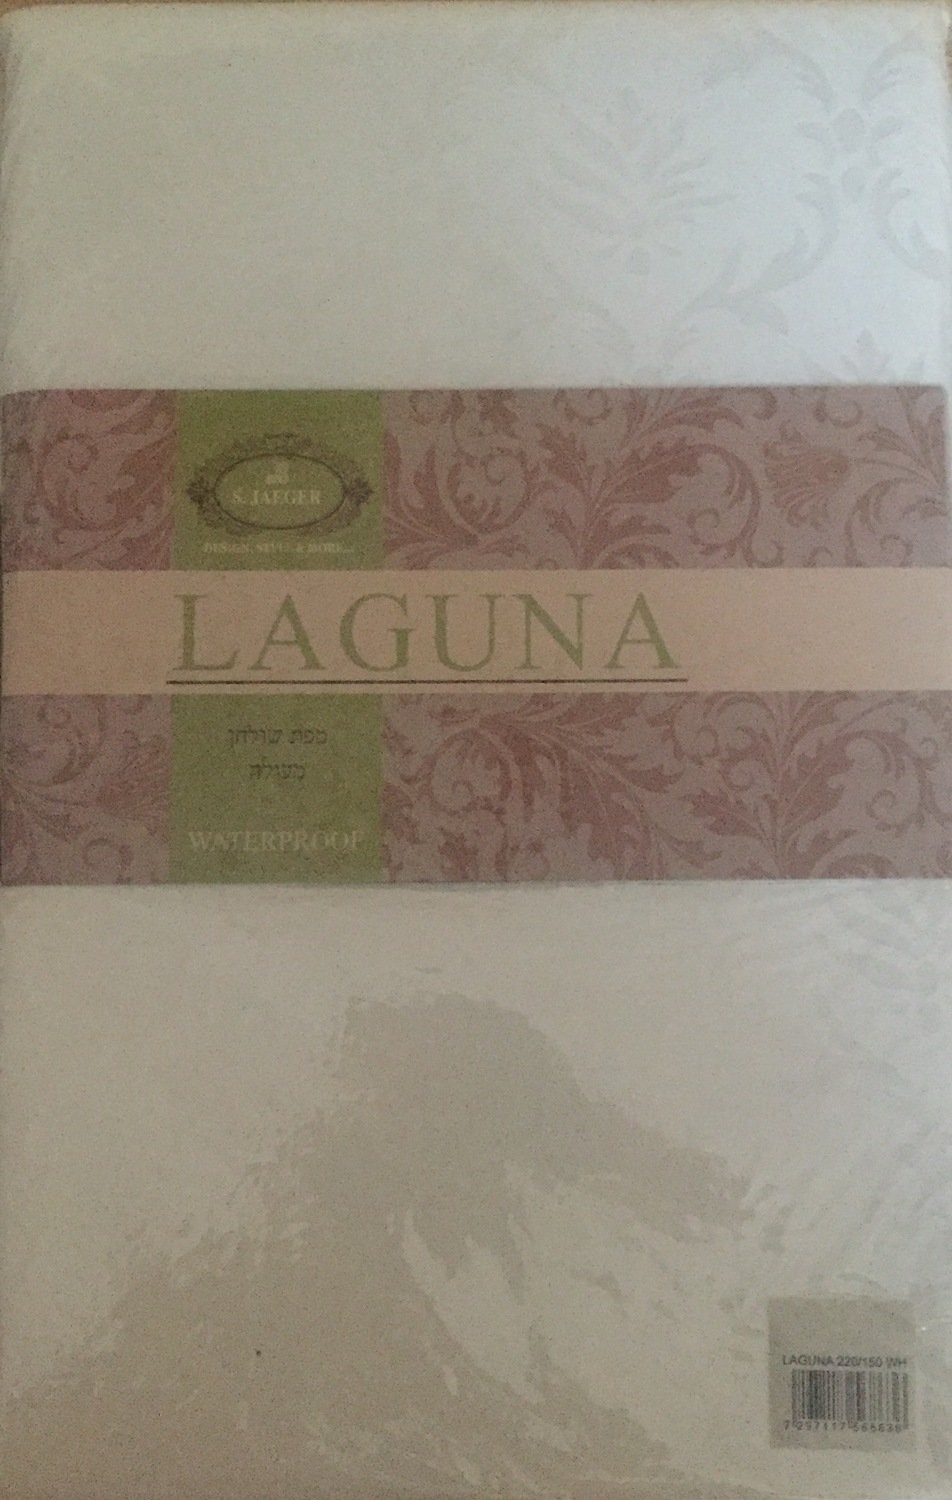 Laguna White Tablecloth, 260cm